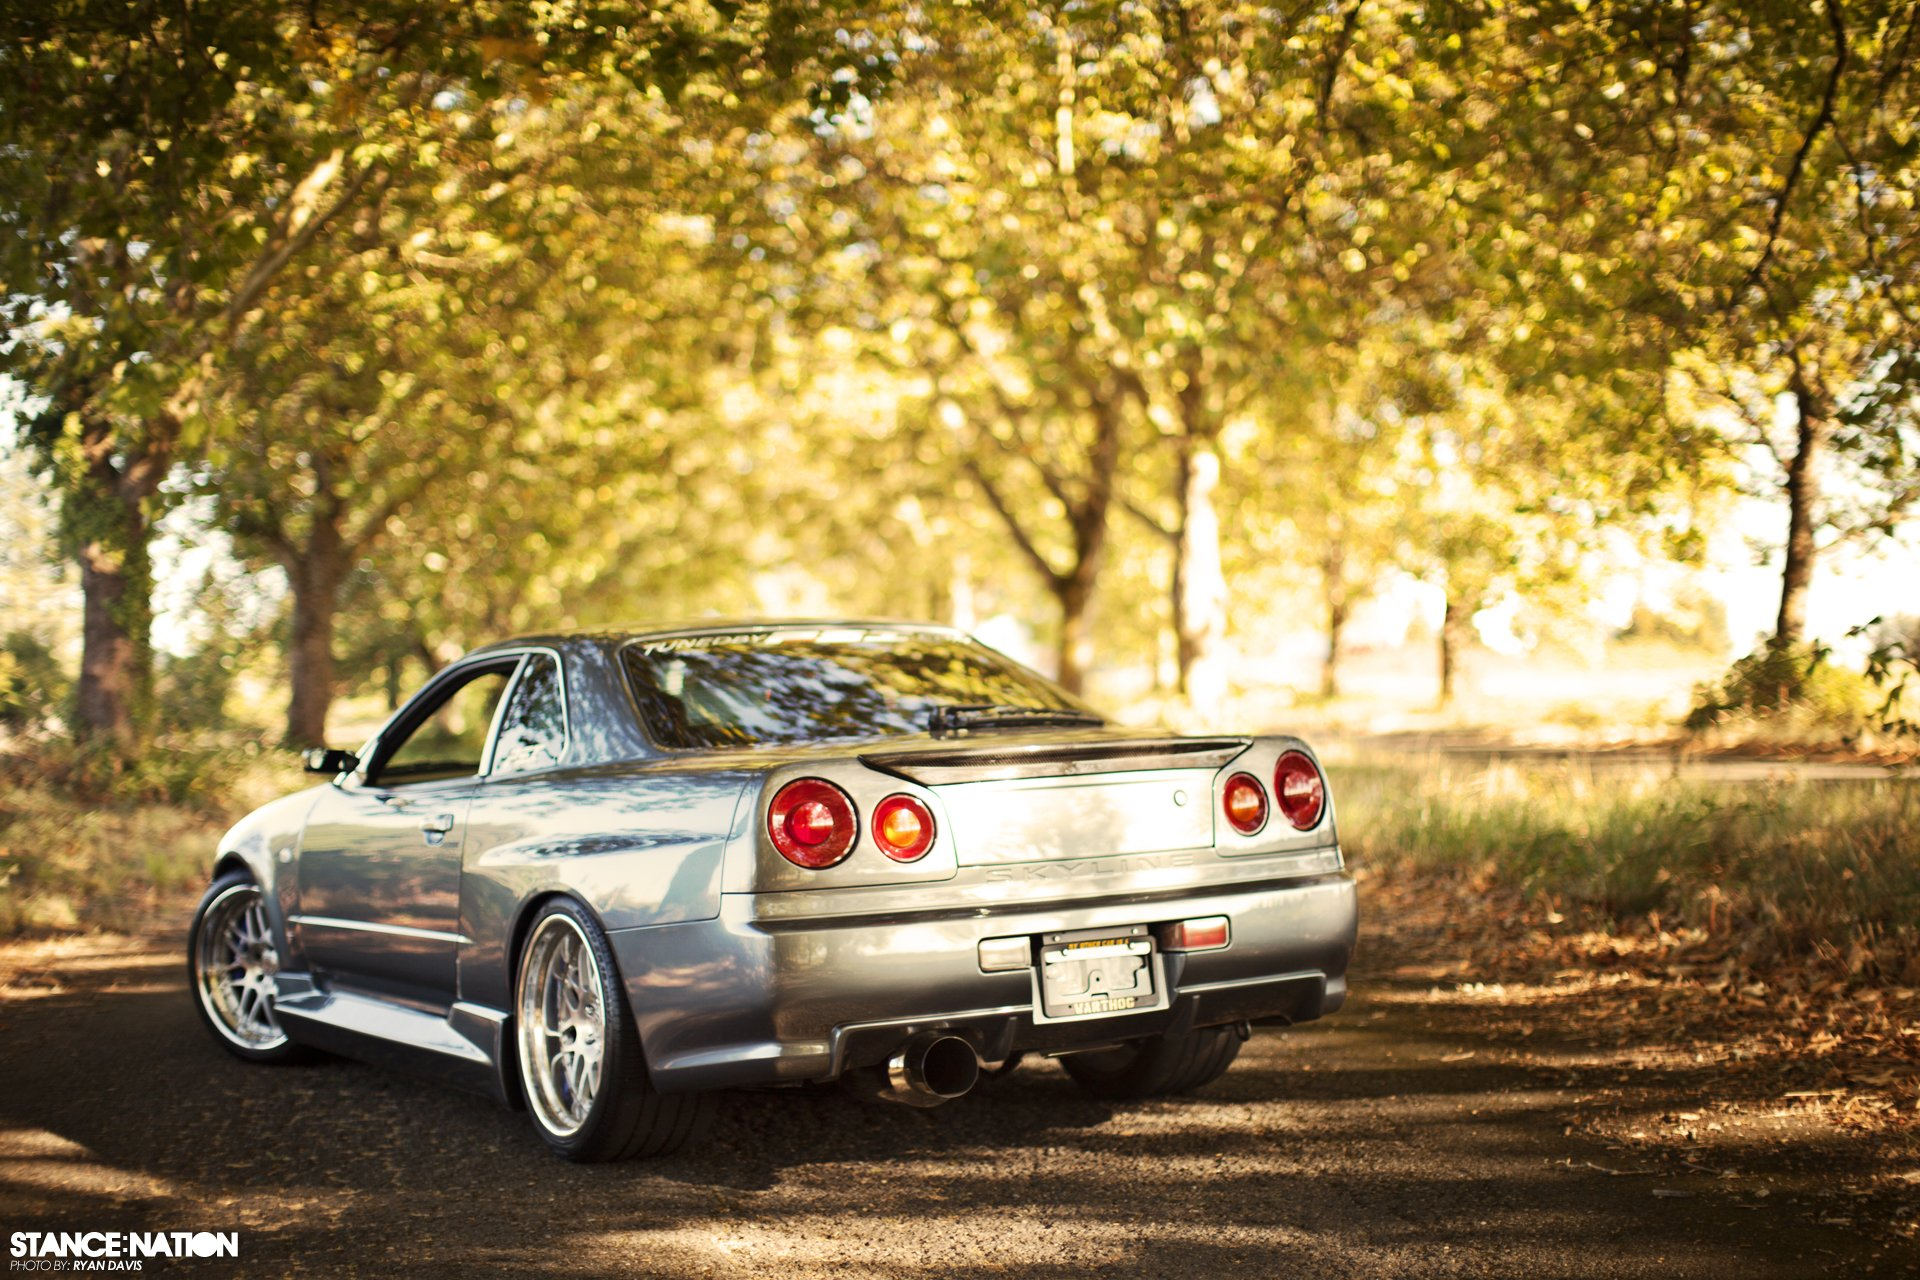 r34 nissan skyline gt r custom tuning wallpaper. Black Bedroom Furniture Sets. Home Design Ideas